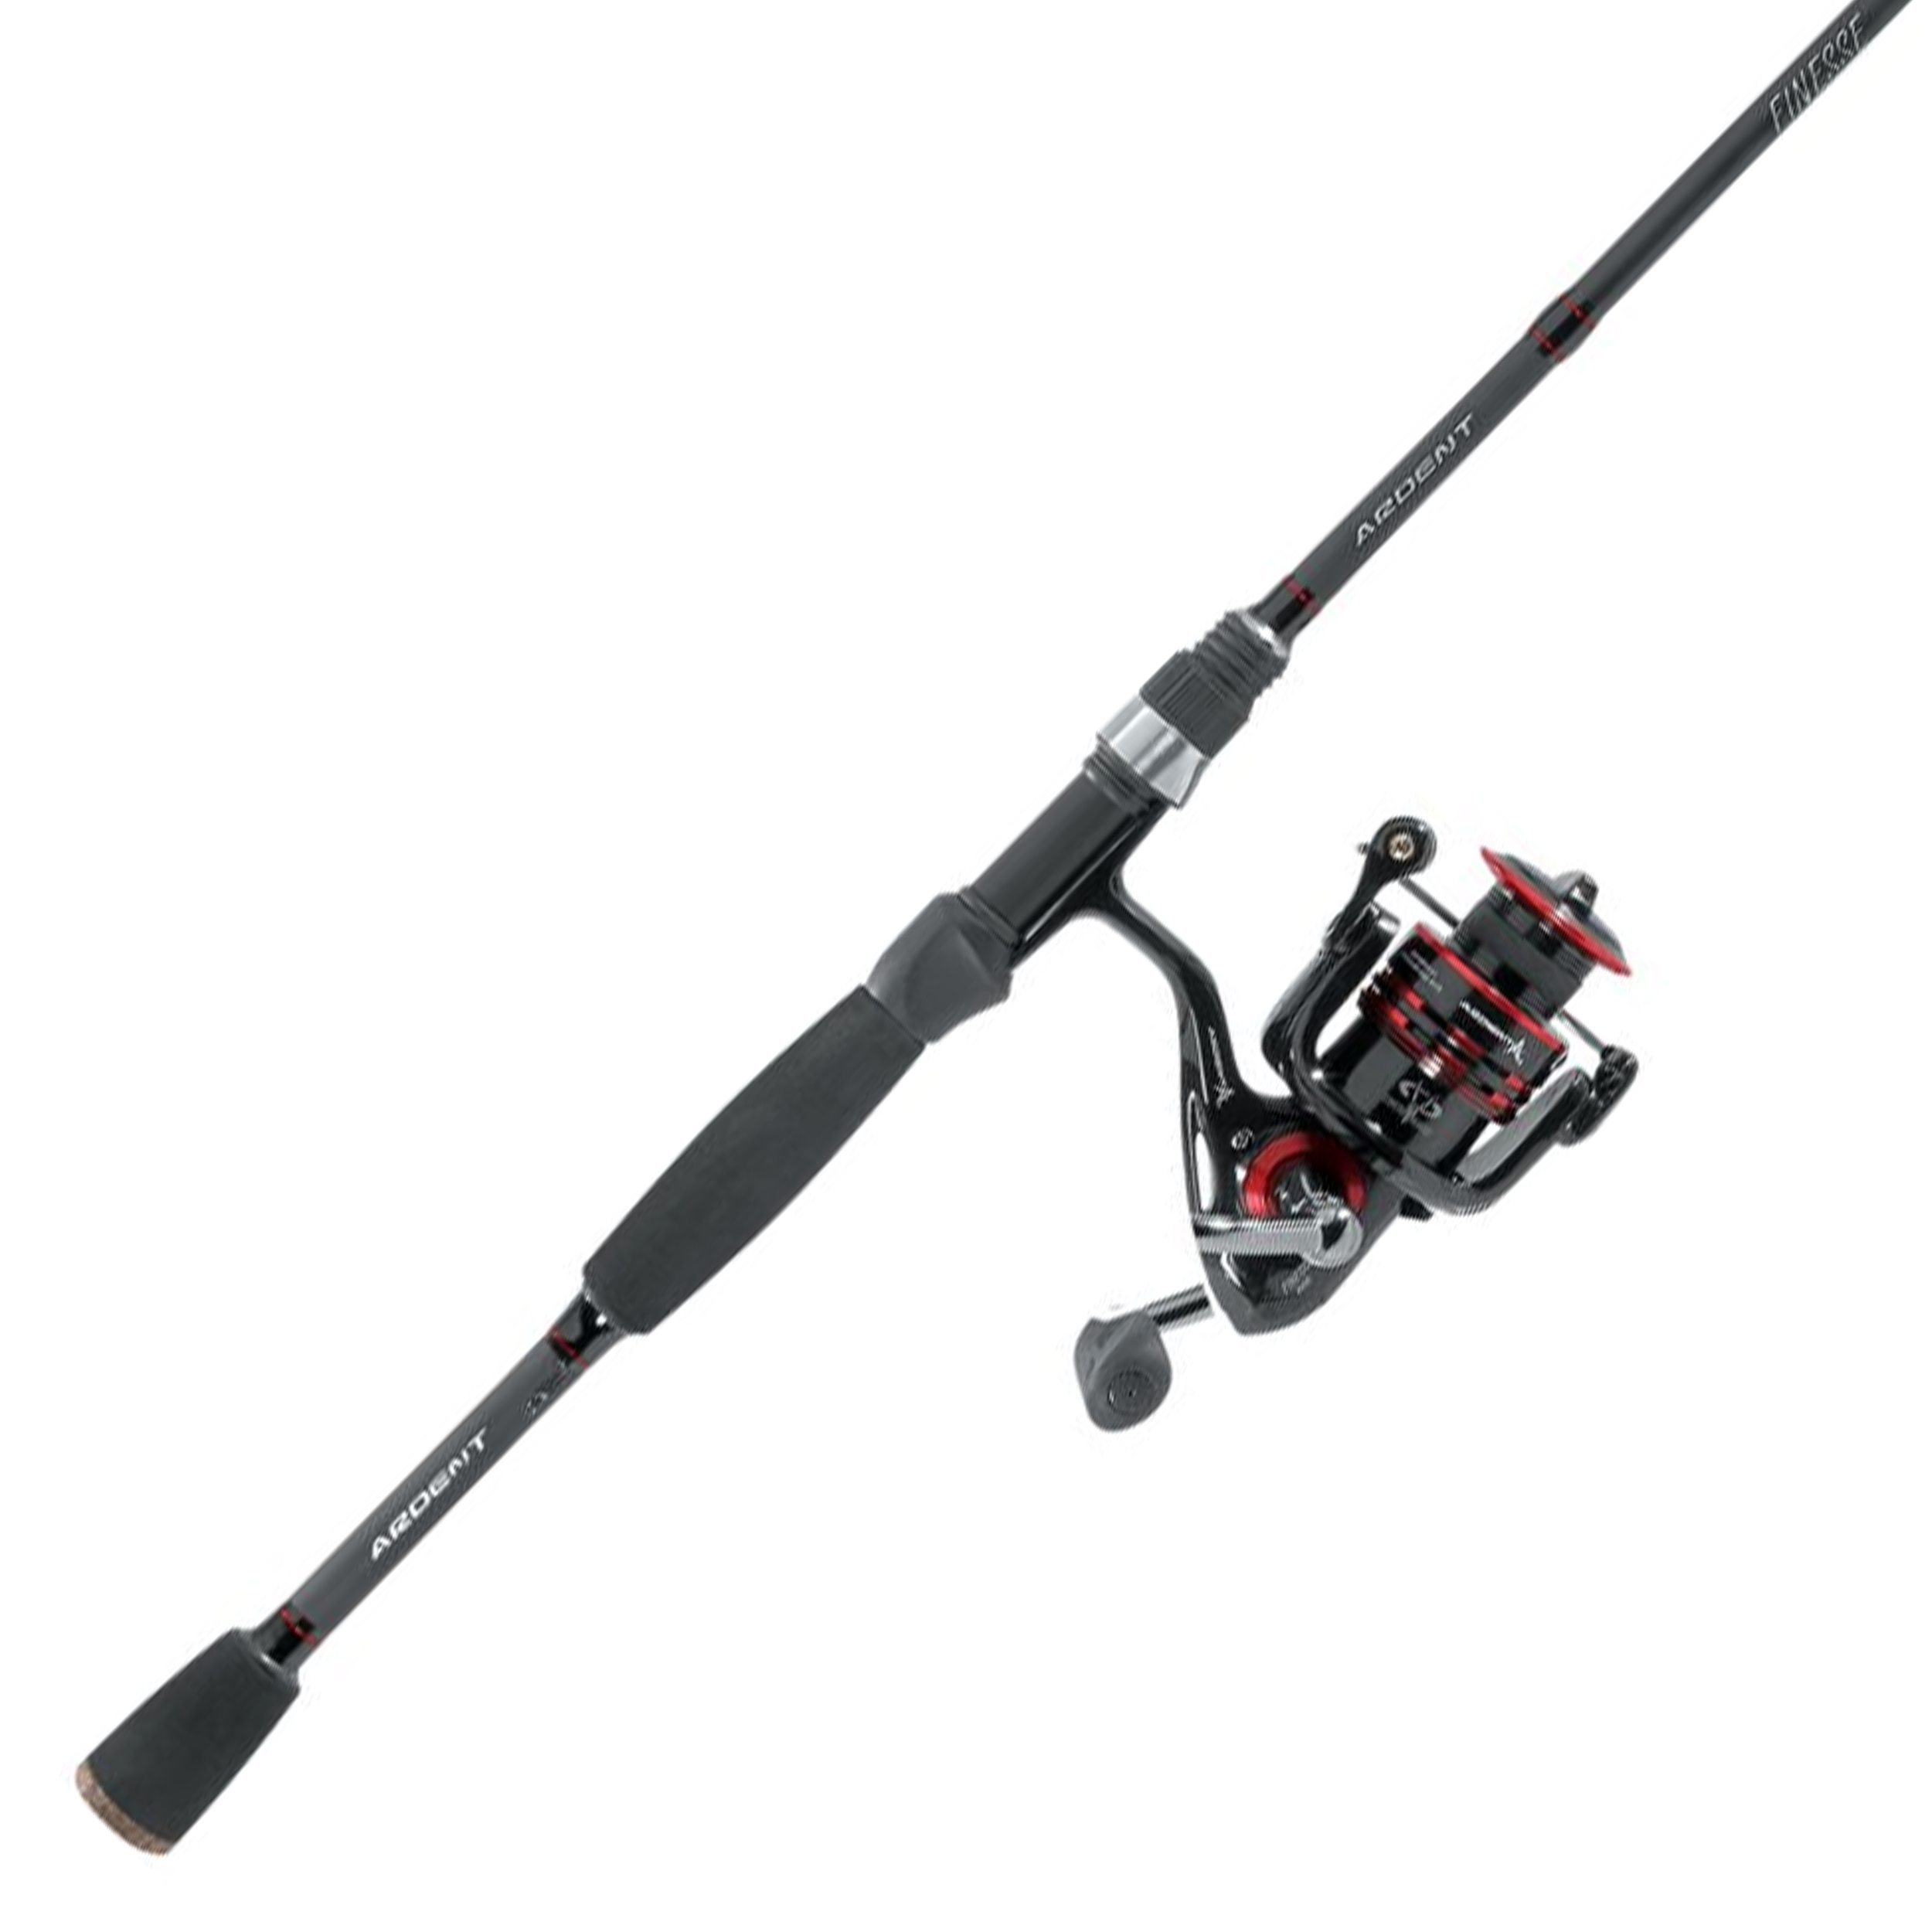 Ardent Finesse Fishing Combo, 2 Piece Rod with Spinning Reel